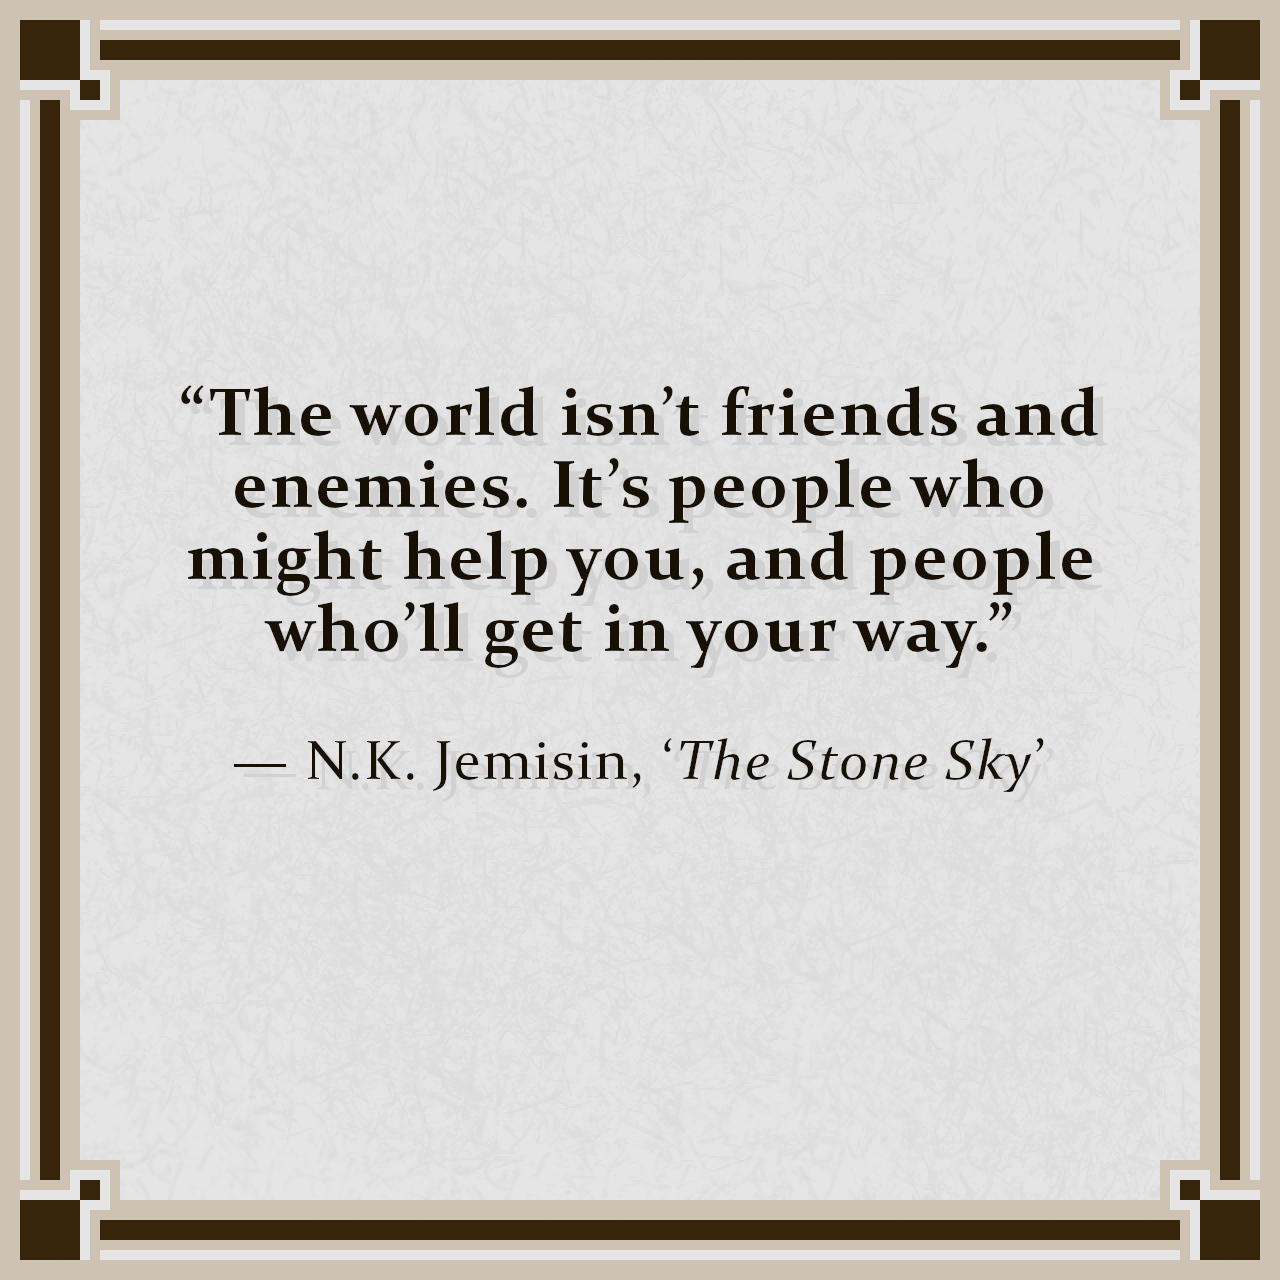 """""""The world isn't friends and enemies. It's people who might help you, and people who'll get in your way."""" — N.K. Jemisin, 'The Stone Sky'"""